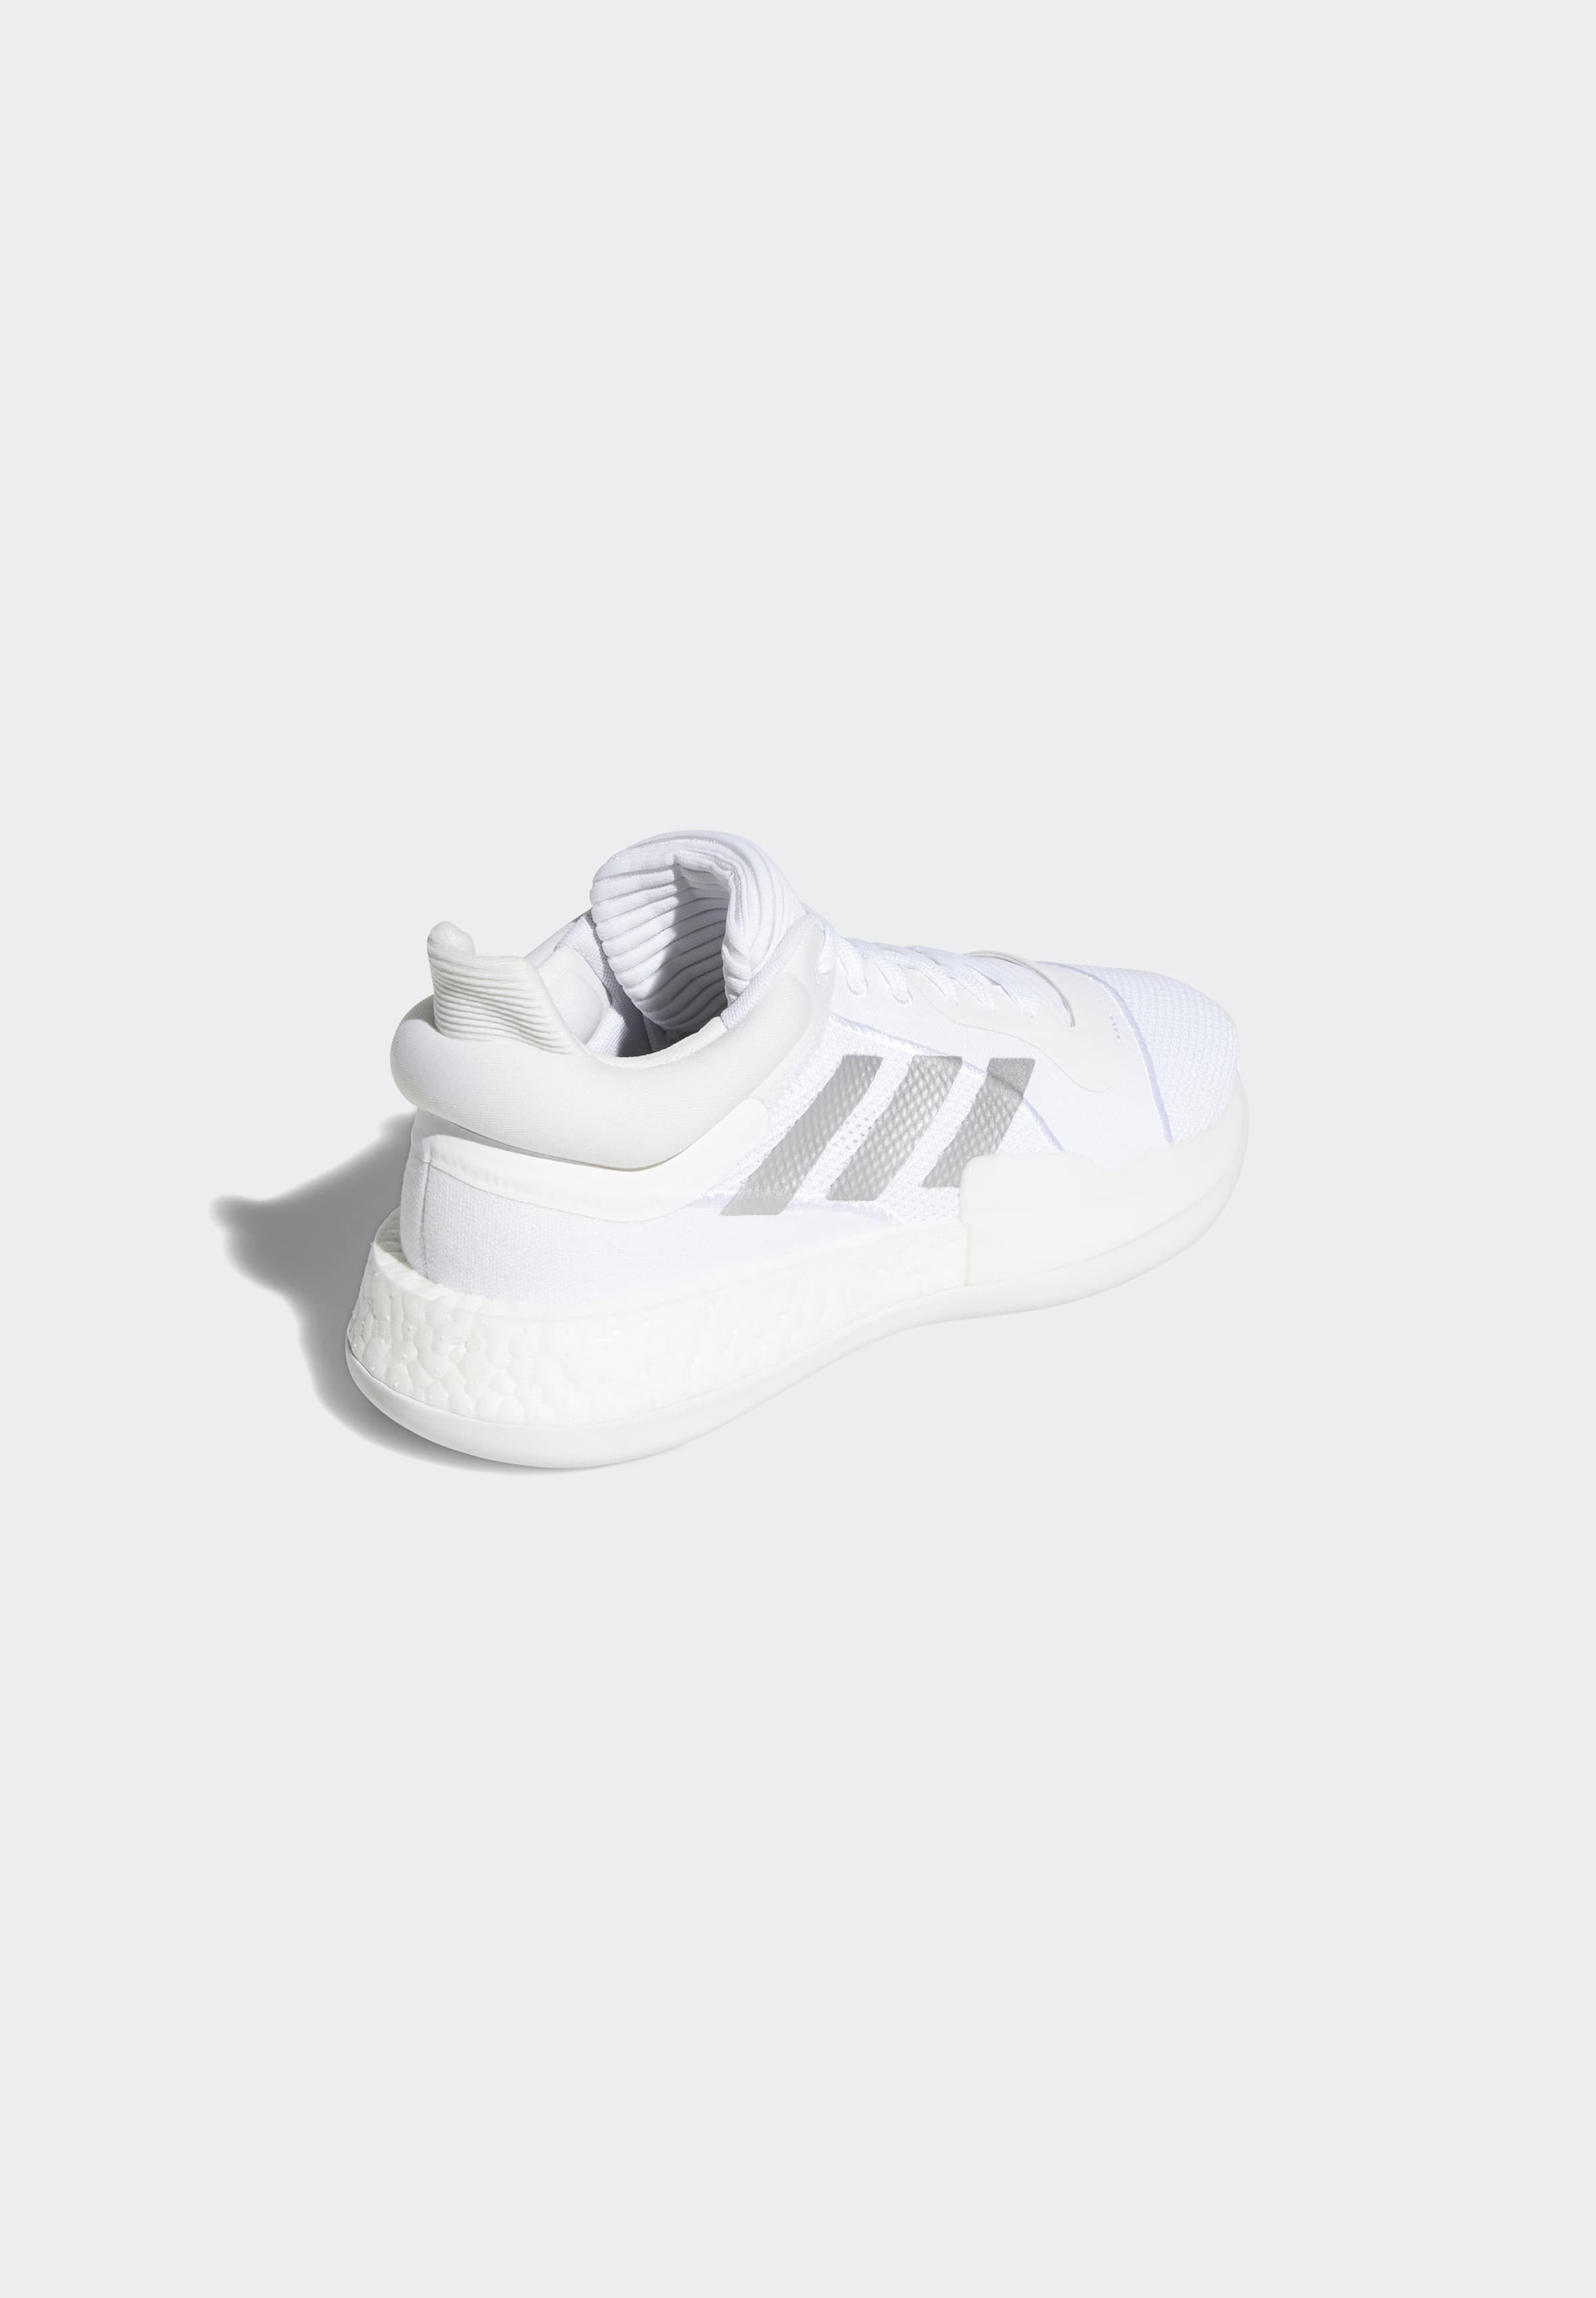 adidas Performance MARQUEE BOOST LOW SHOES - Handballschuh - beige/weiß - Herrenschuhe 0jhBx